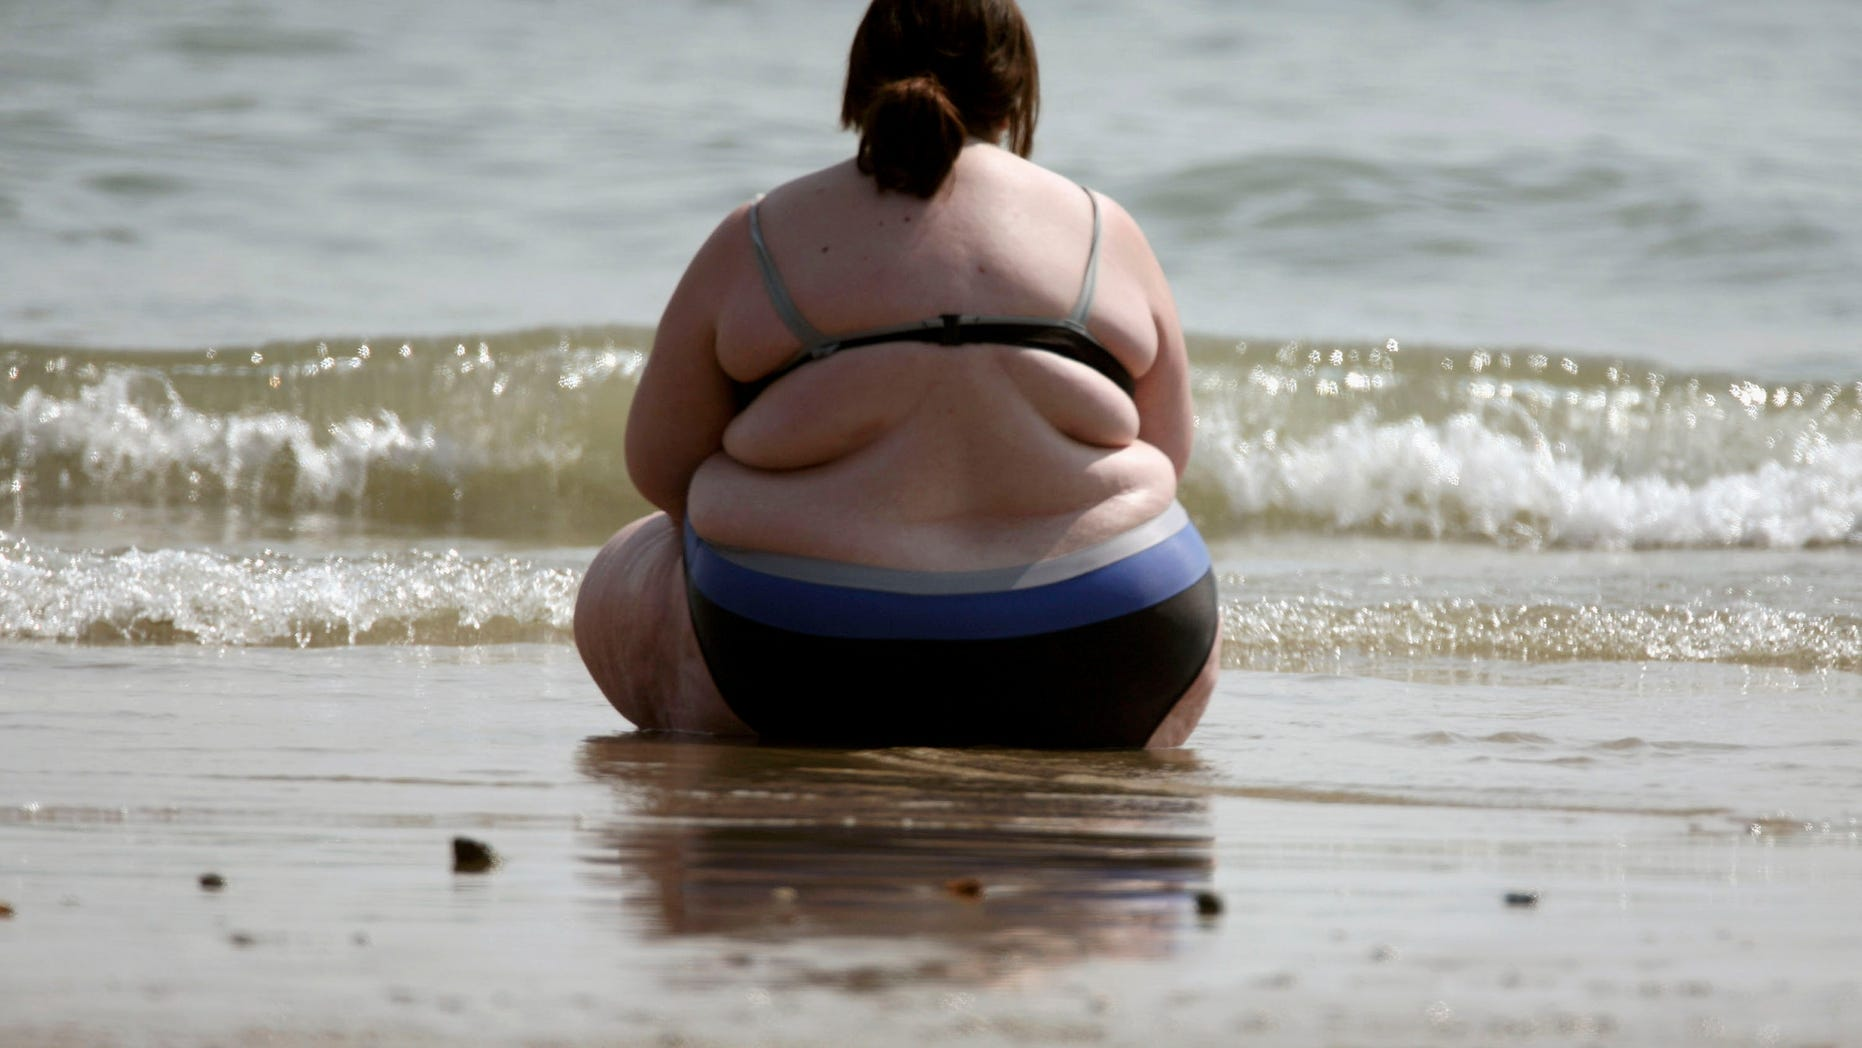 BOURNEMOUTH, UNITED KINGDOM - APRIL 14:  A woman sits at the water's edge as she enjoys the hot weather on the sea front on April 14 in Bournemouth, England. The un-seasonably warm weather has heralded the start to what weather forecasters predict will be a record breaking summer.  (Photo by Matt Cardy/Getty Images)